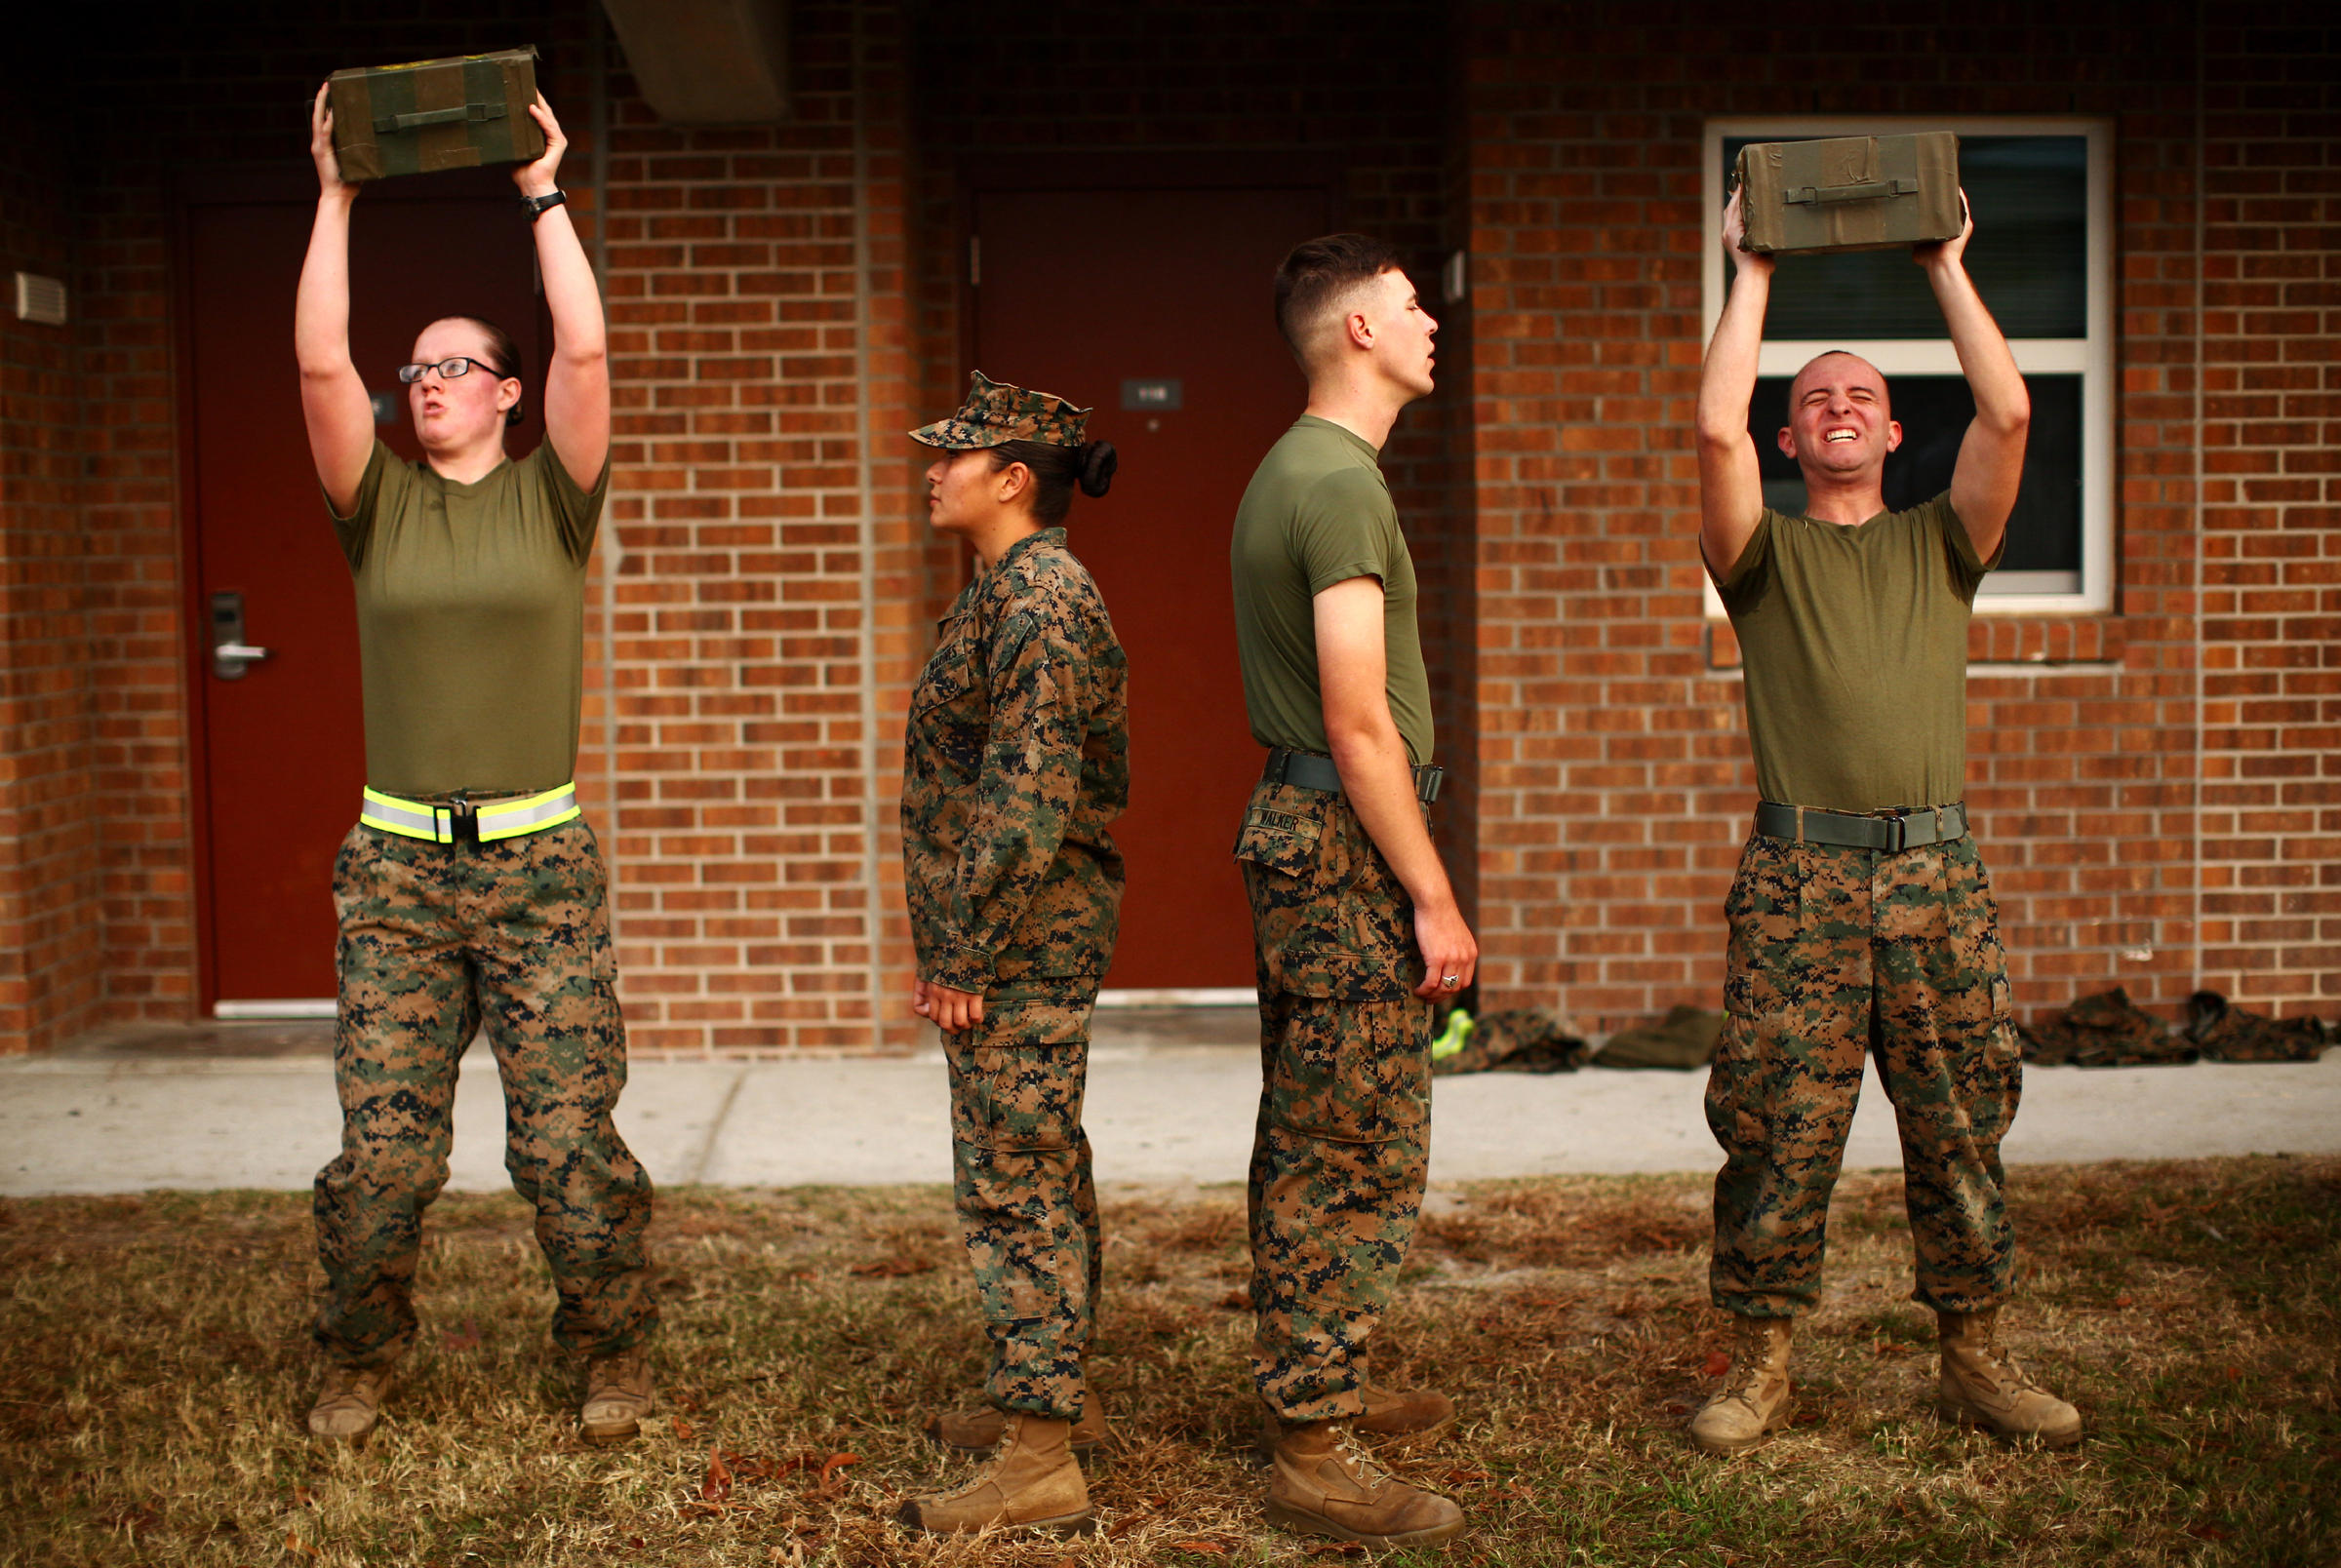 Combat Training Can Female Marines Get The Job Done Wunc